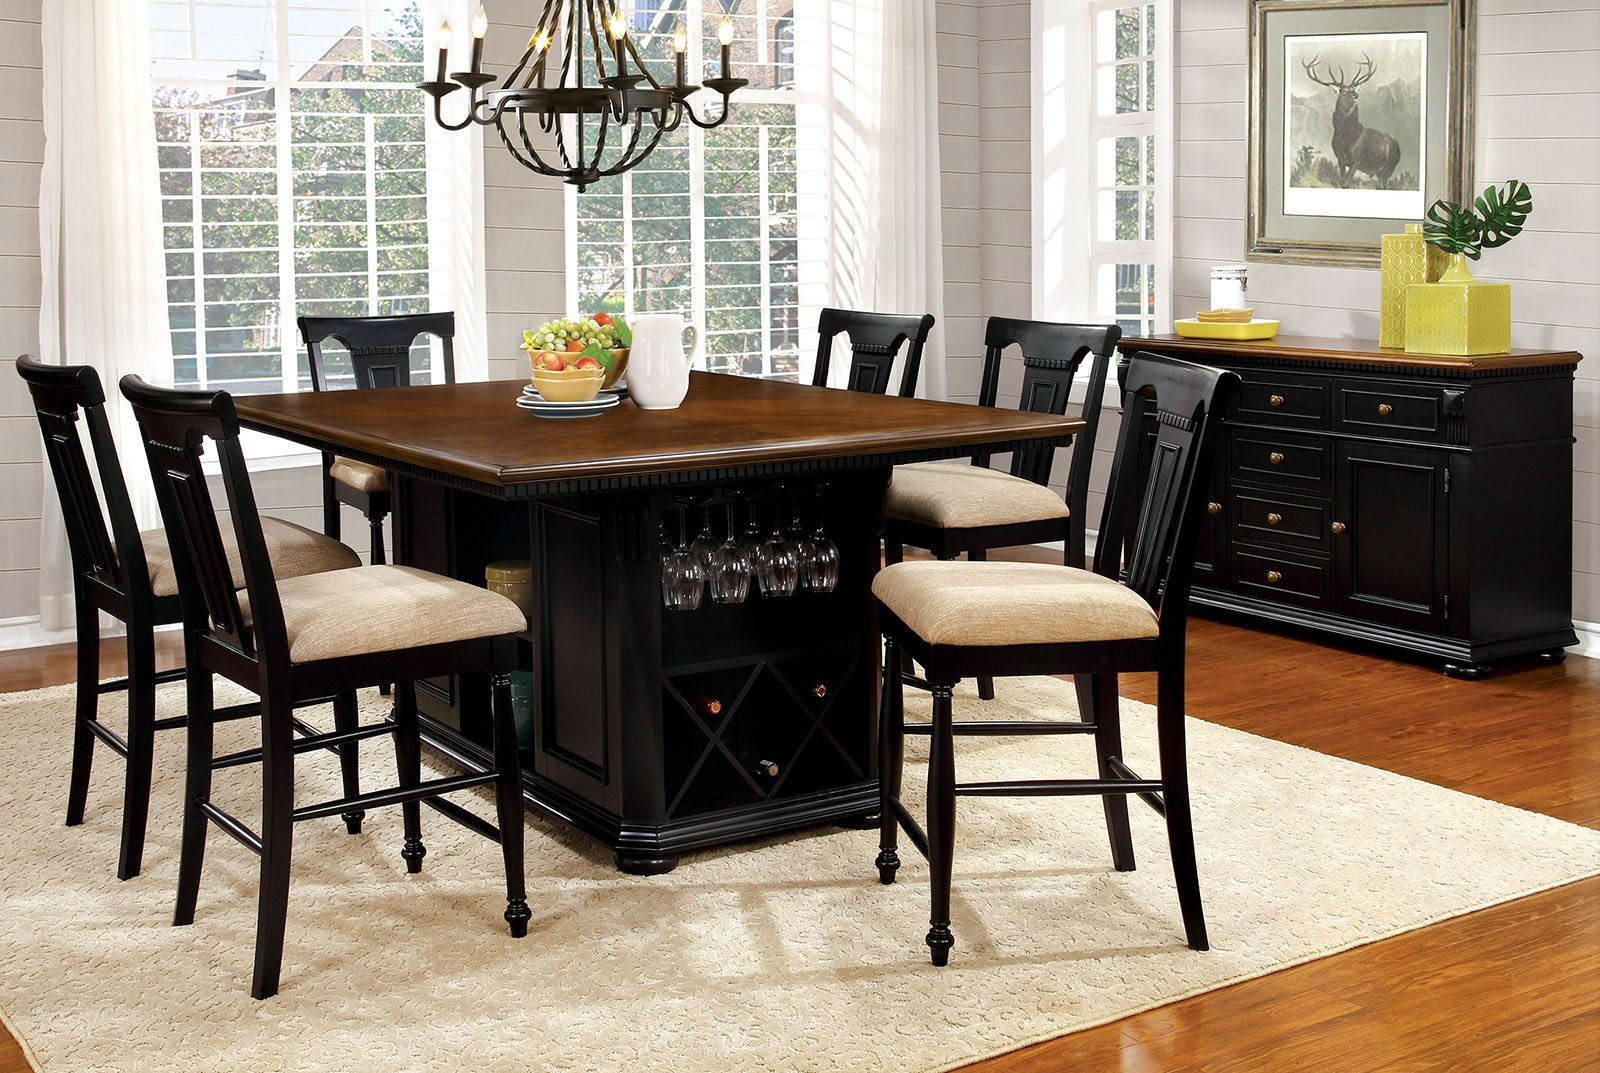 Sabrina cherry black counter height dining room set for Black dining room set